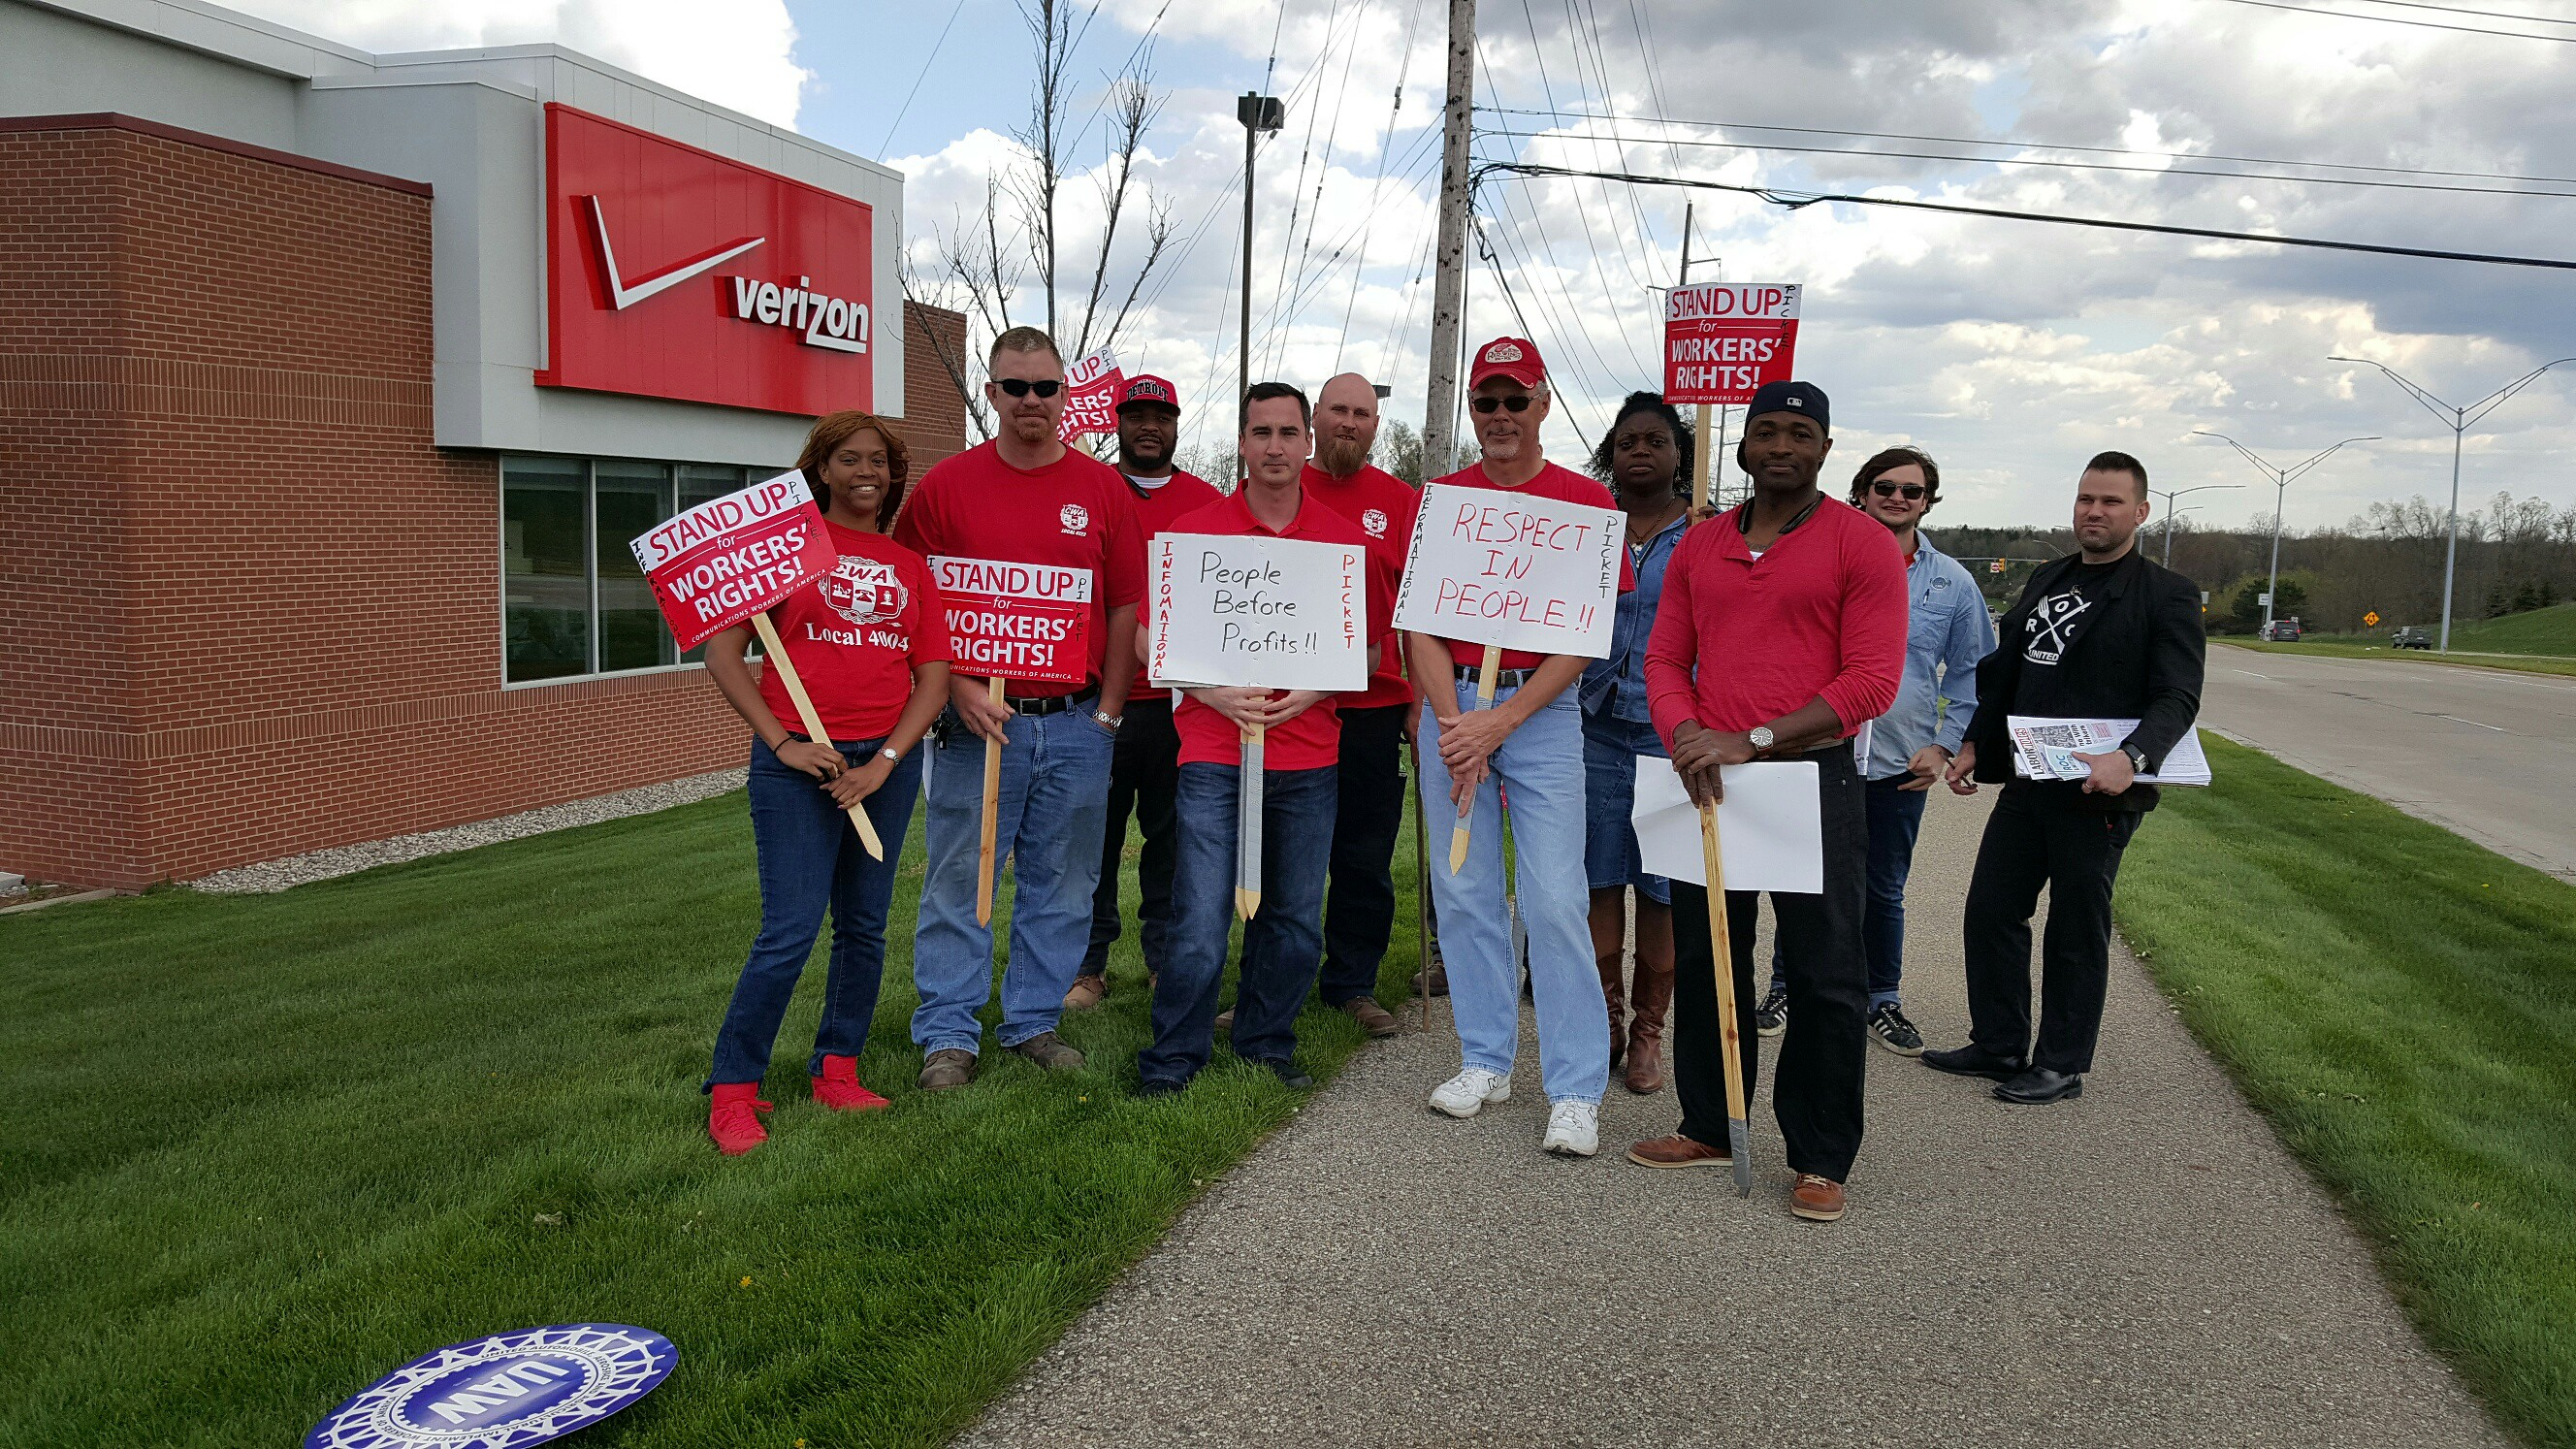 pontiac-store-picket1 (2)